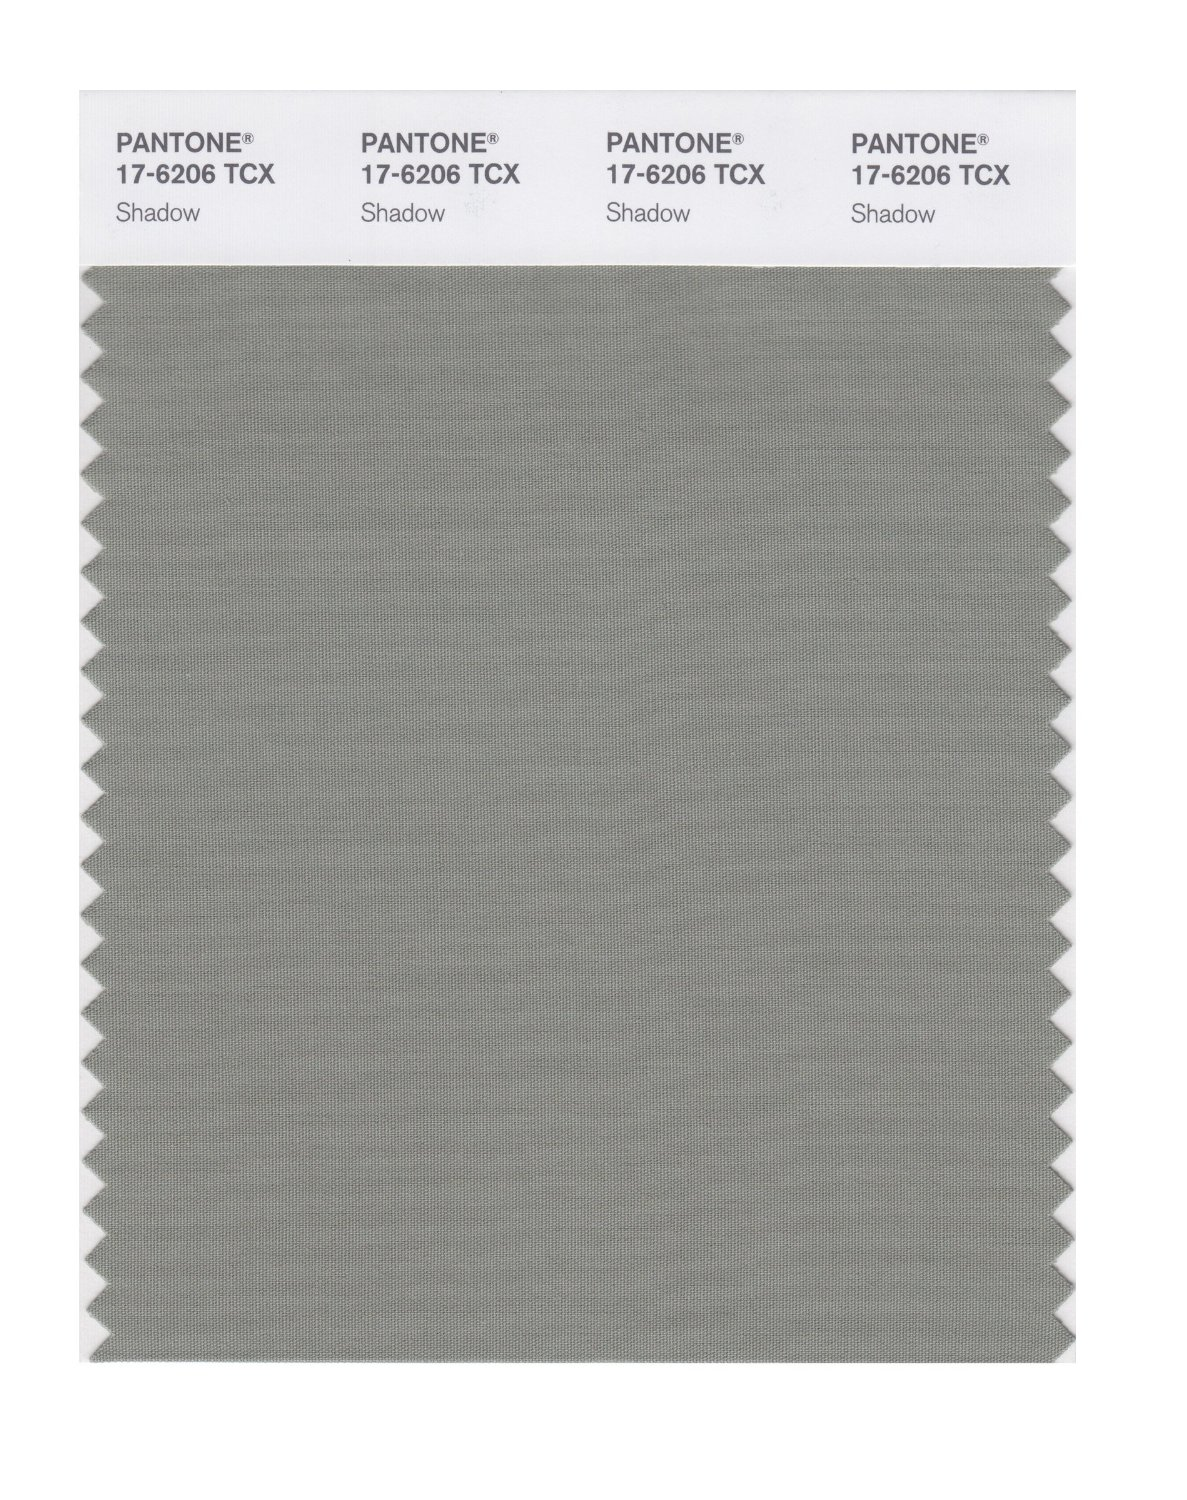 Pantone Smart Swatch 17-6206 Shadow